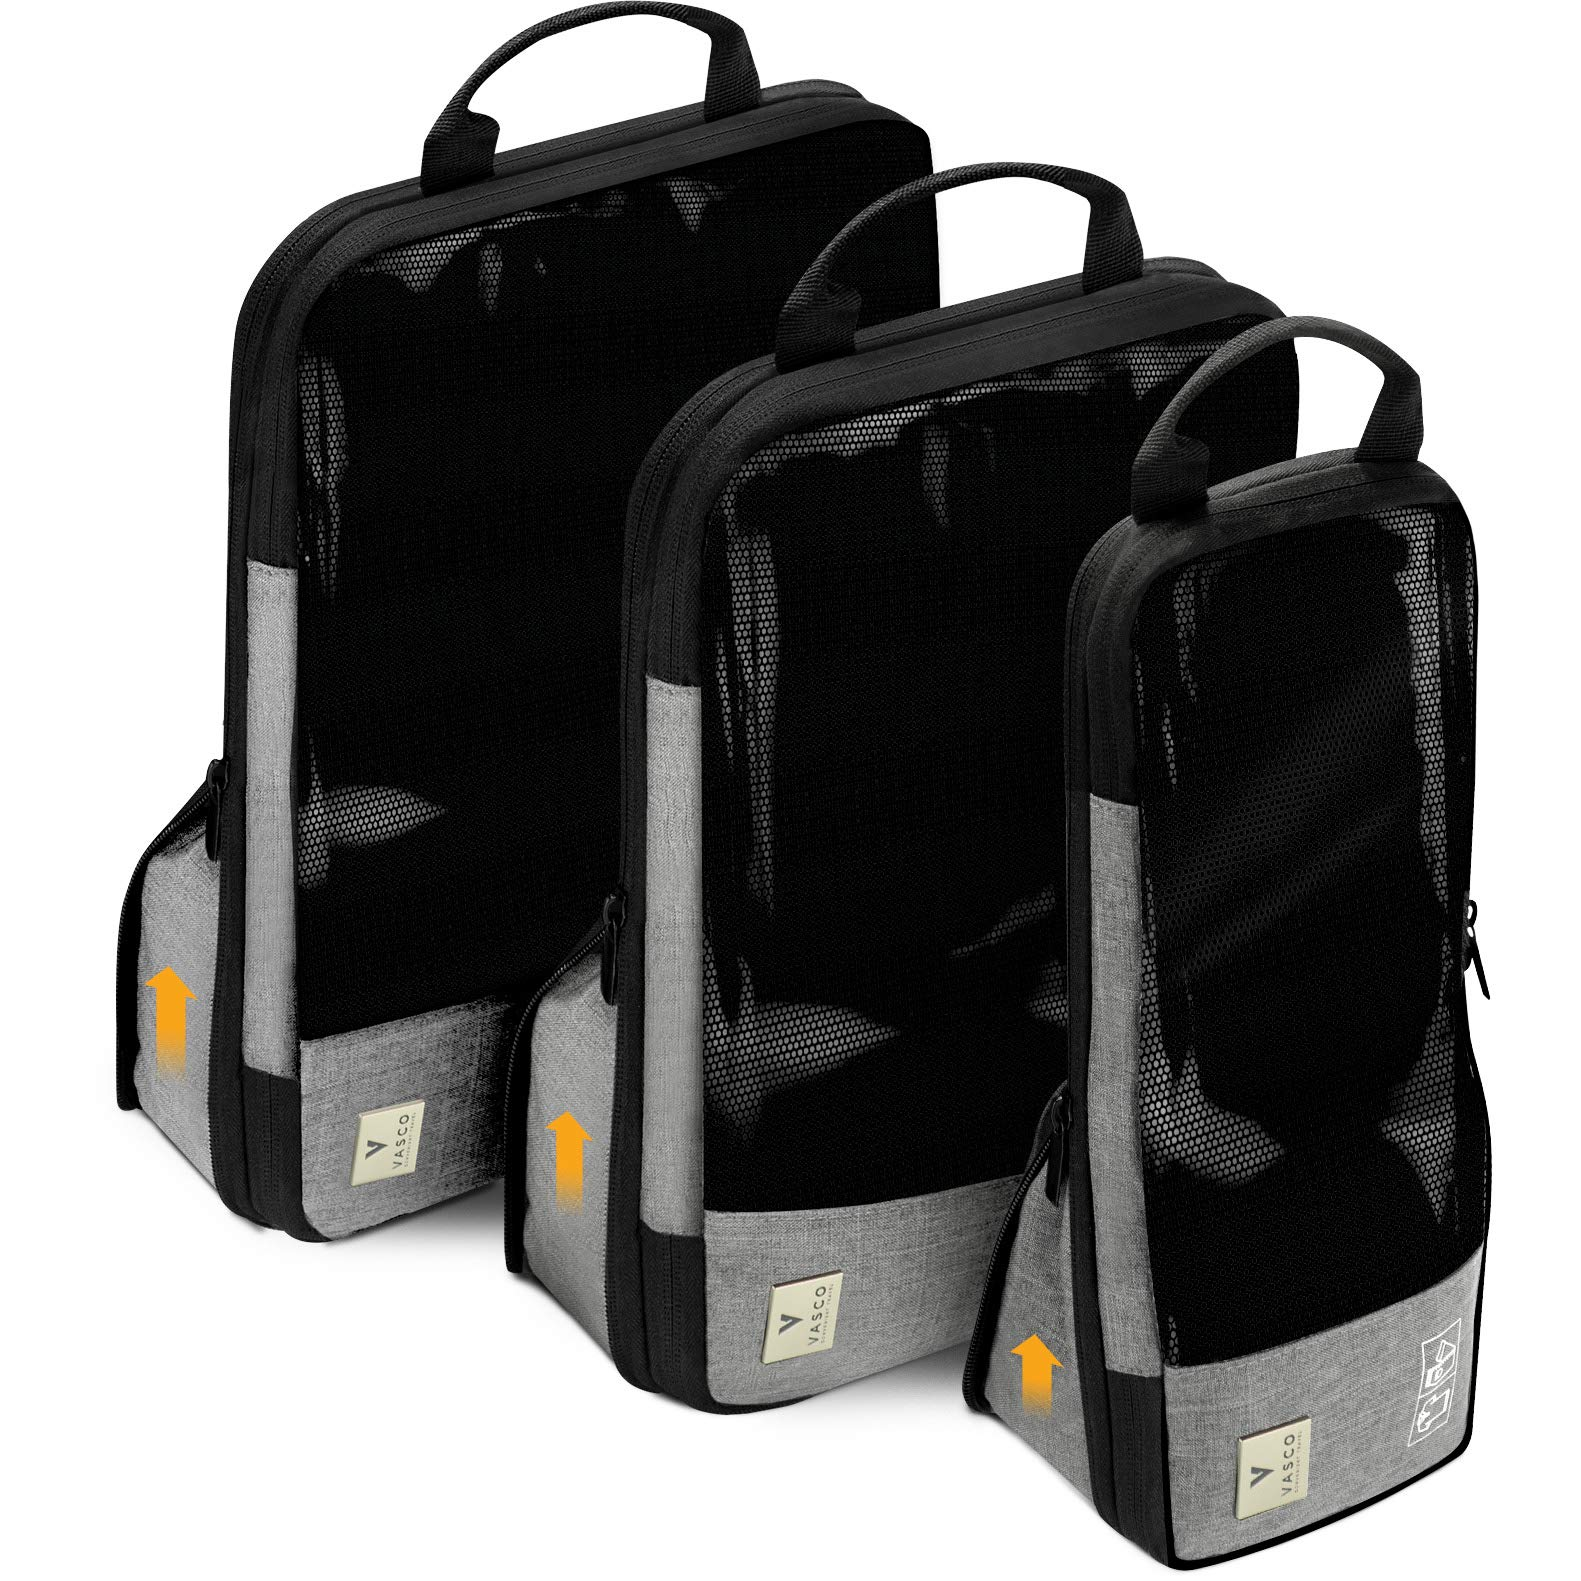 VASCO Compression Packing Cubes for Travel – Set of 3 Slim Packing Cubes